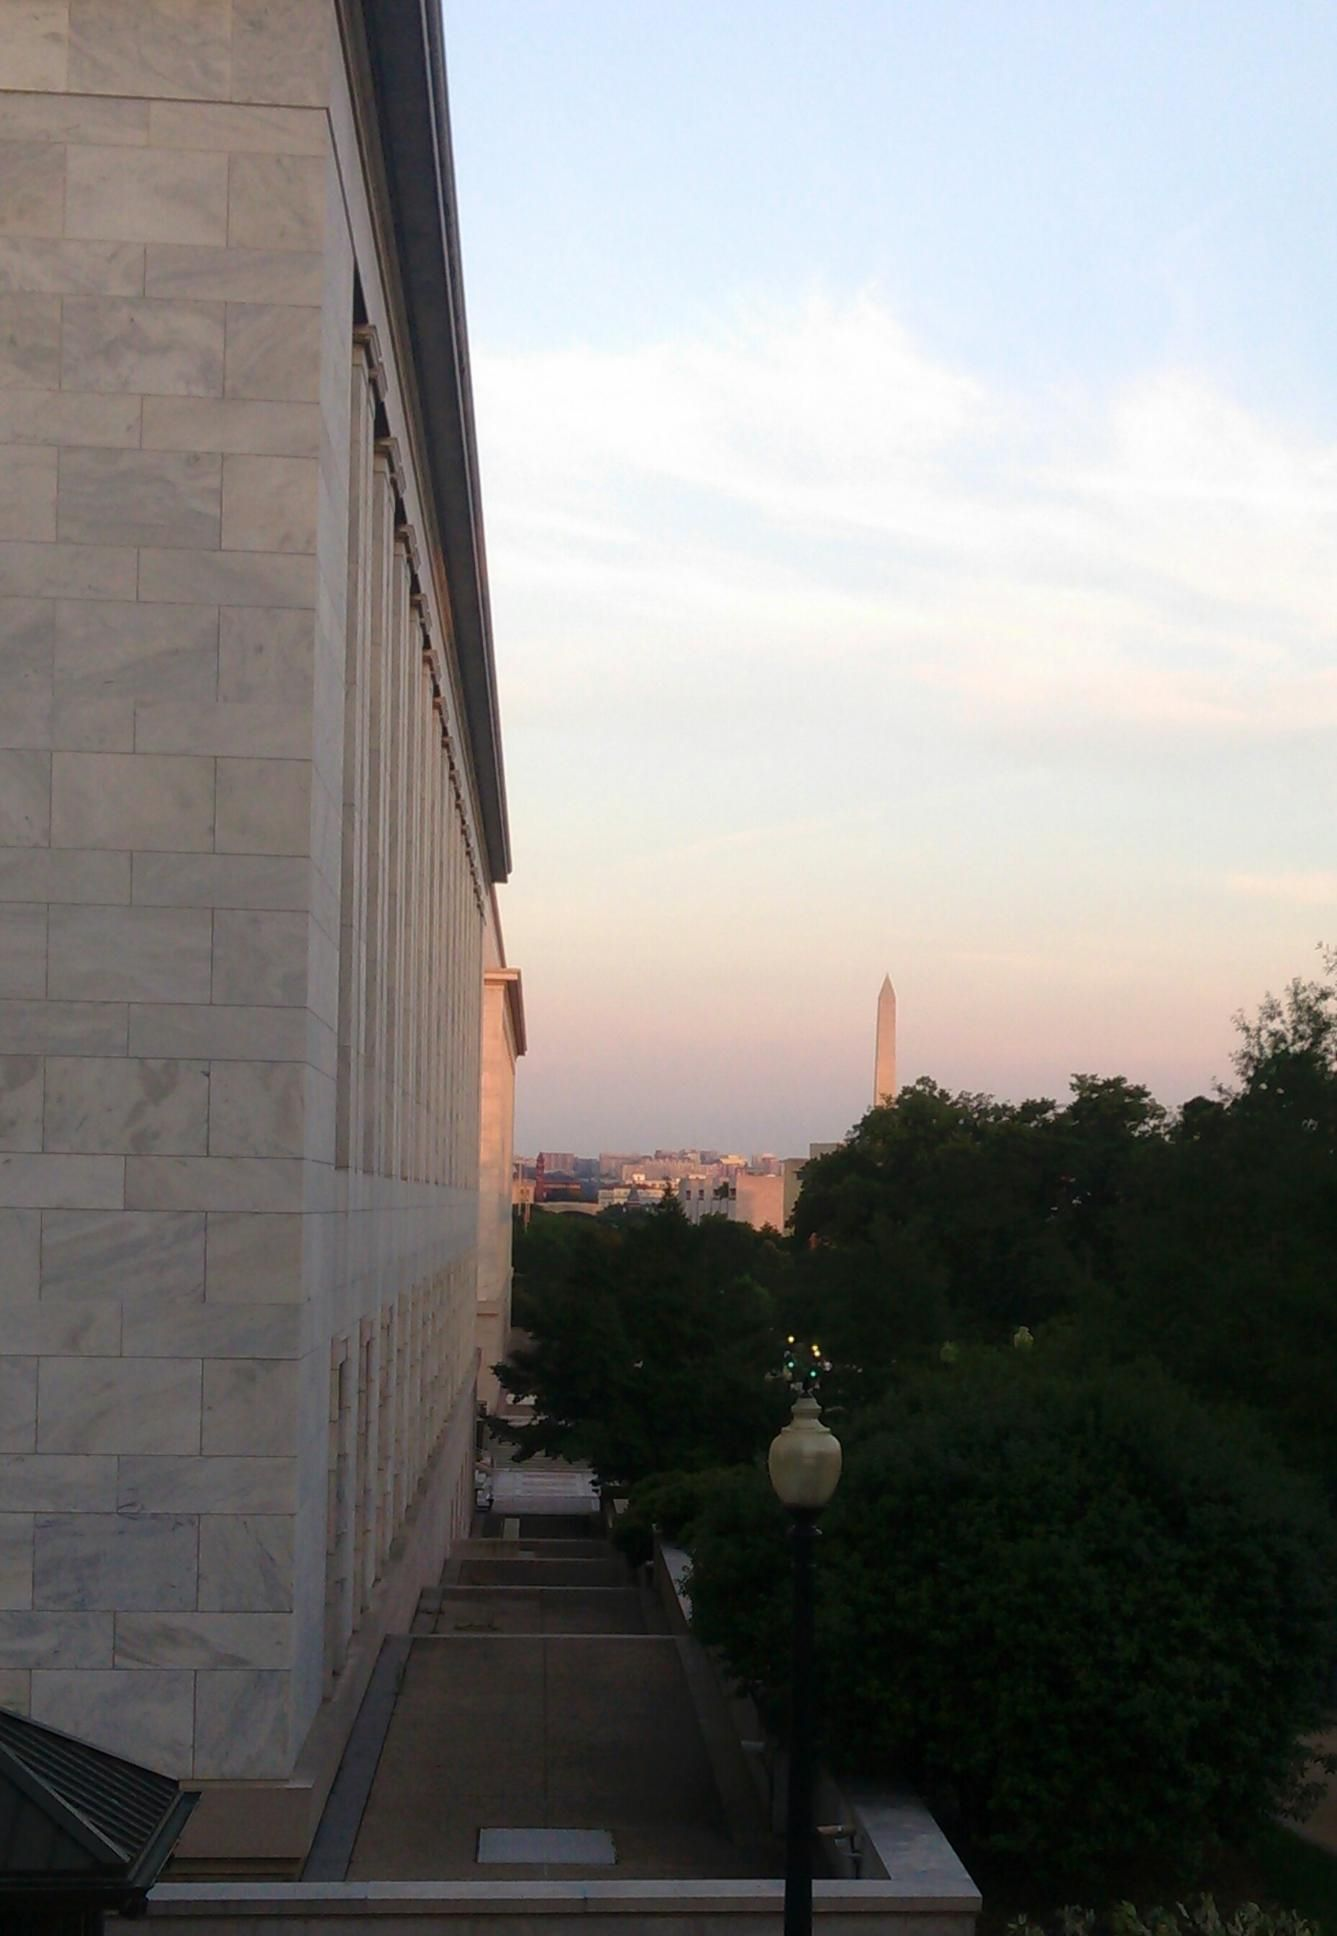 Washington Monument From The House Of Representatives